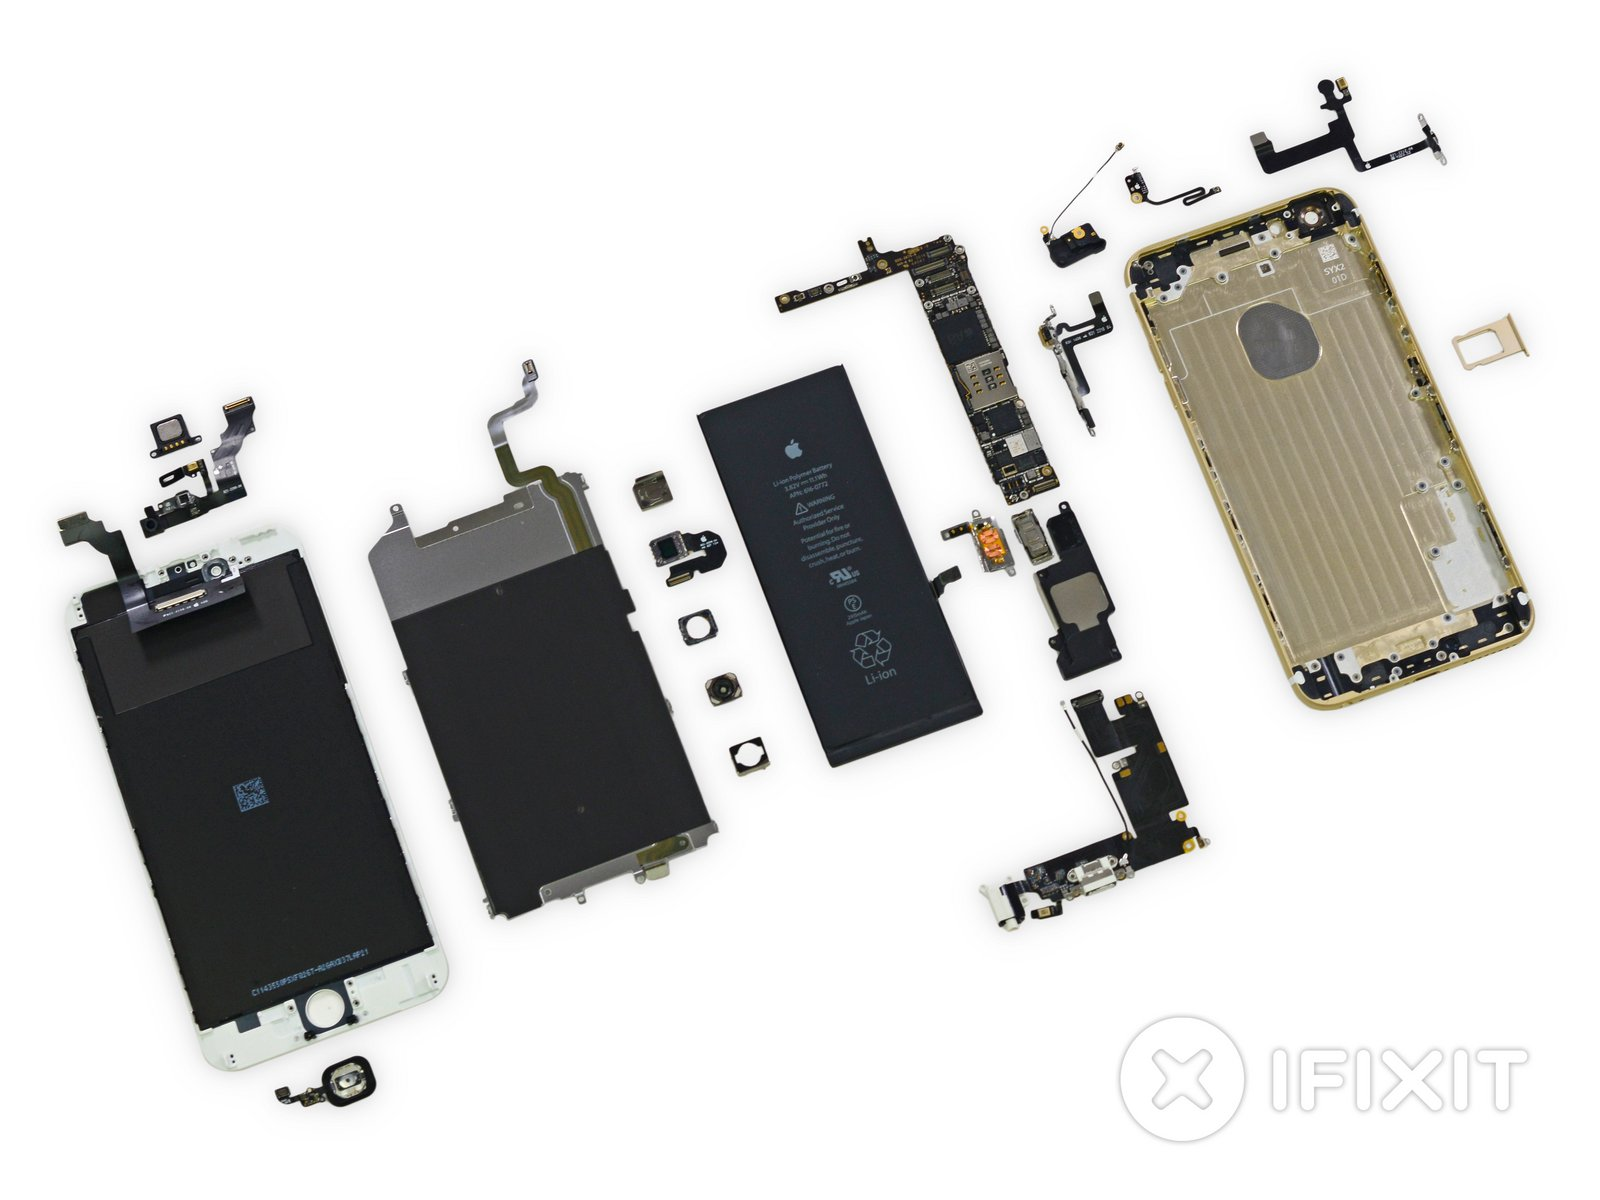 iPhone 6 Plus Teardown - iFixit